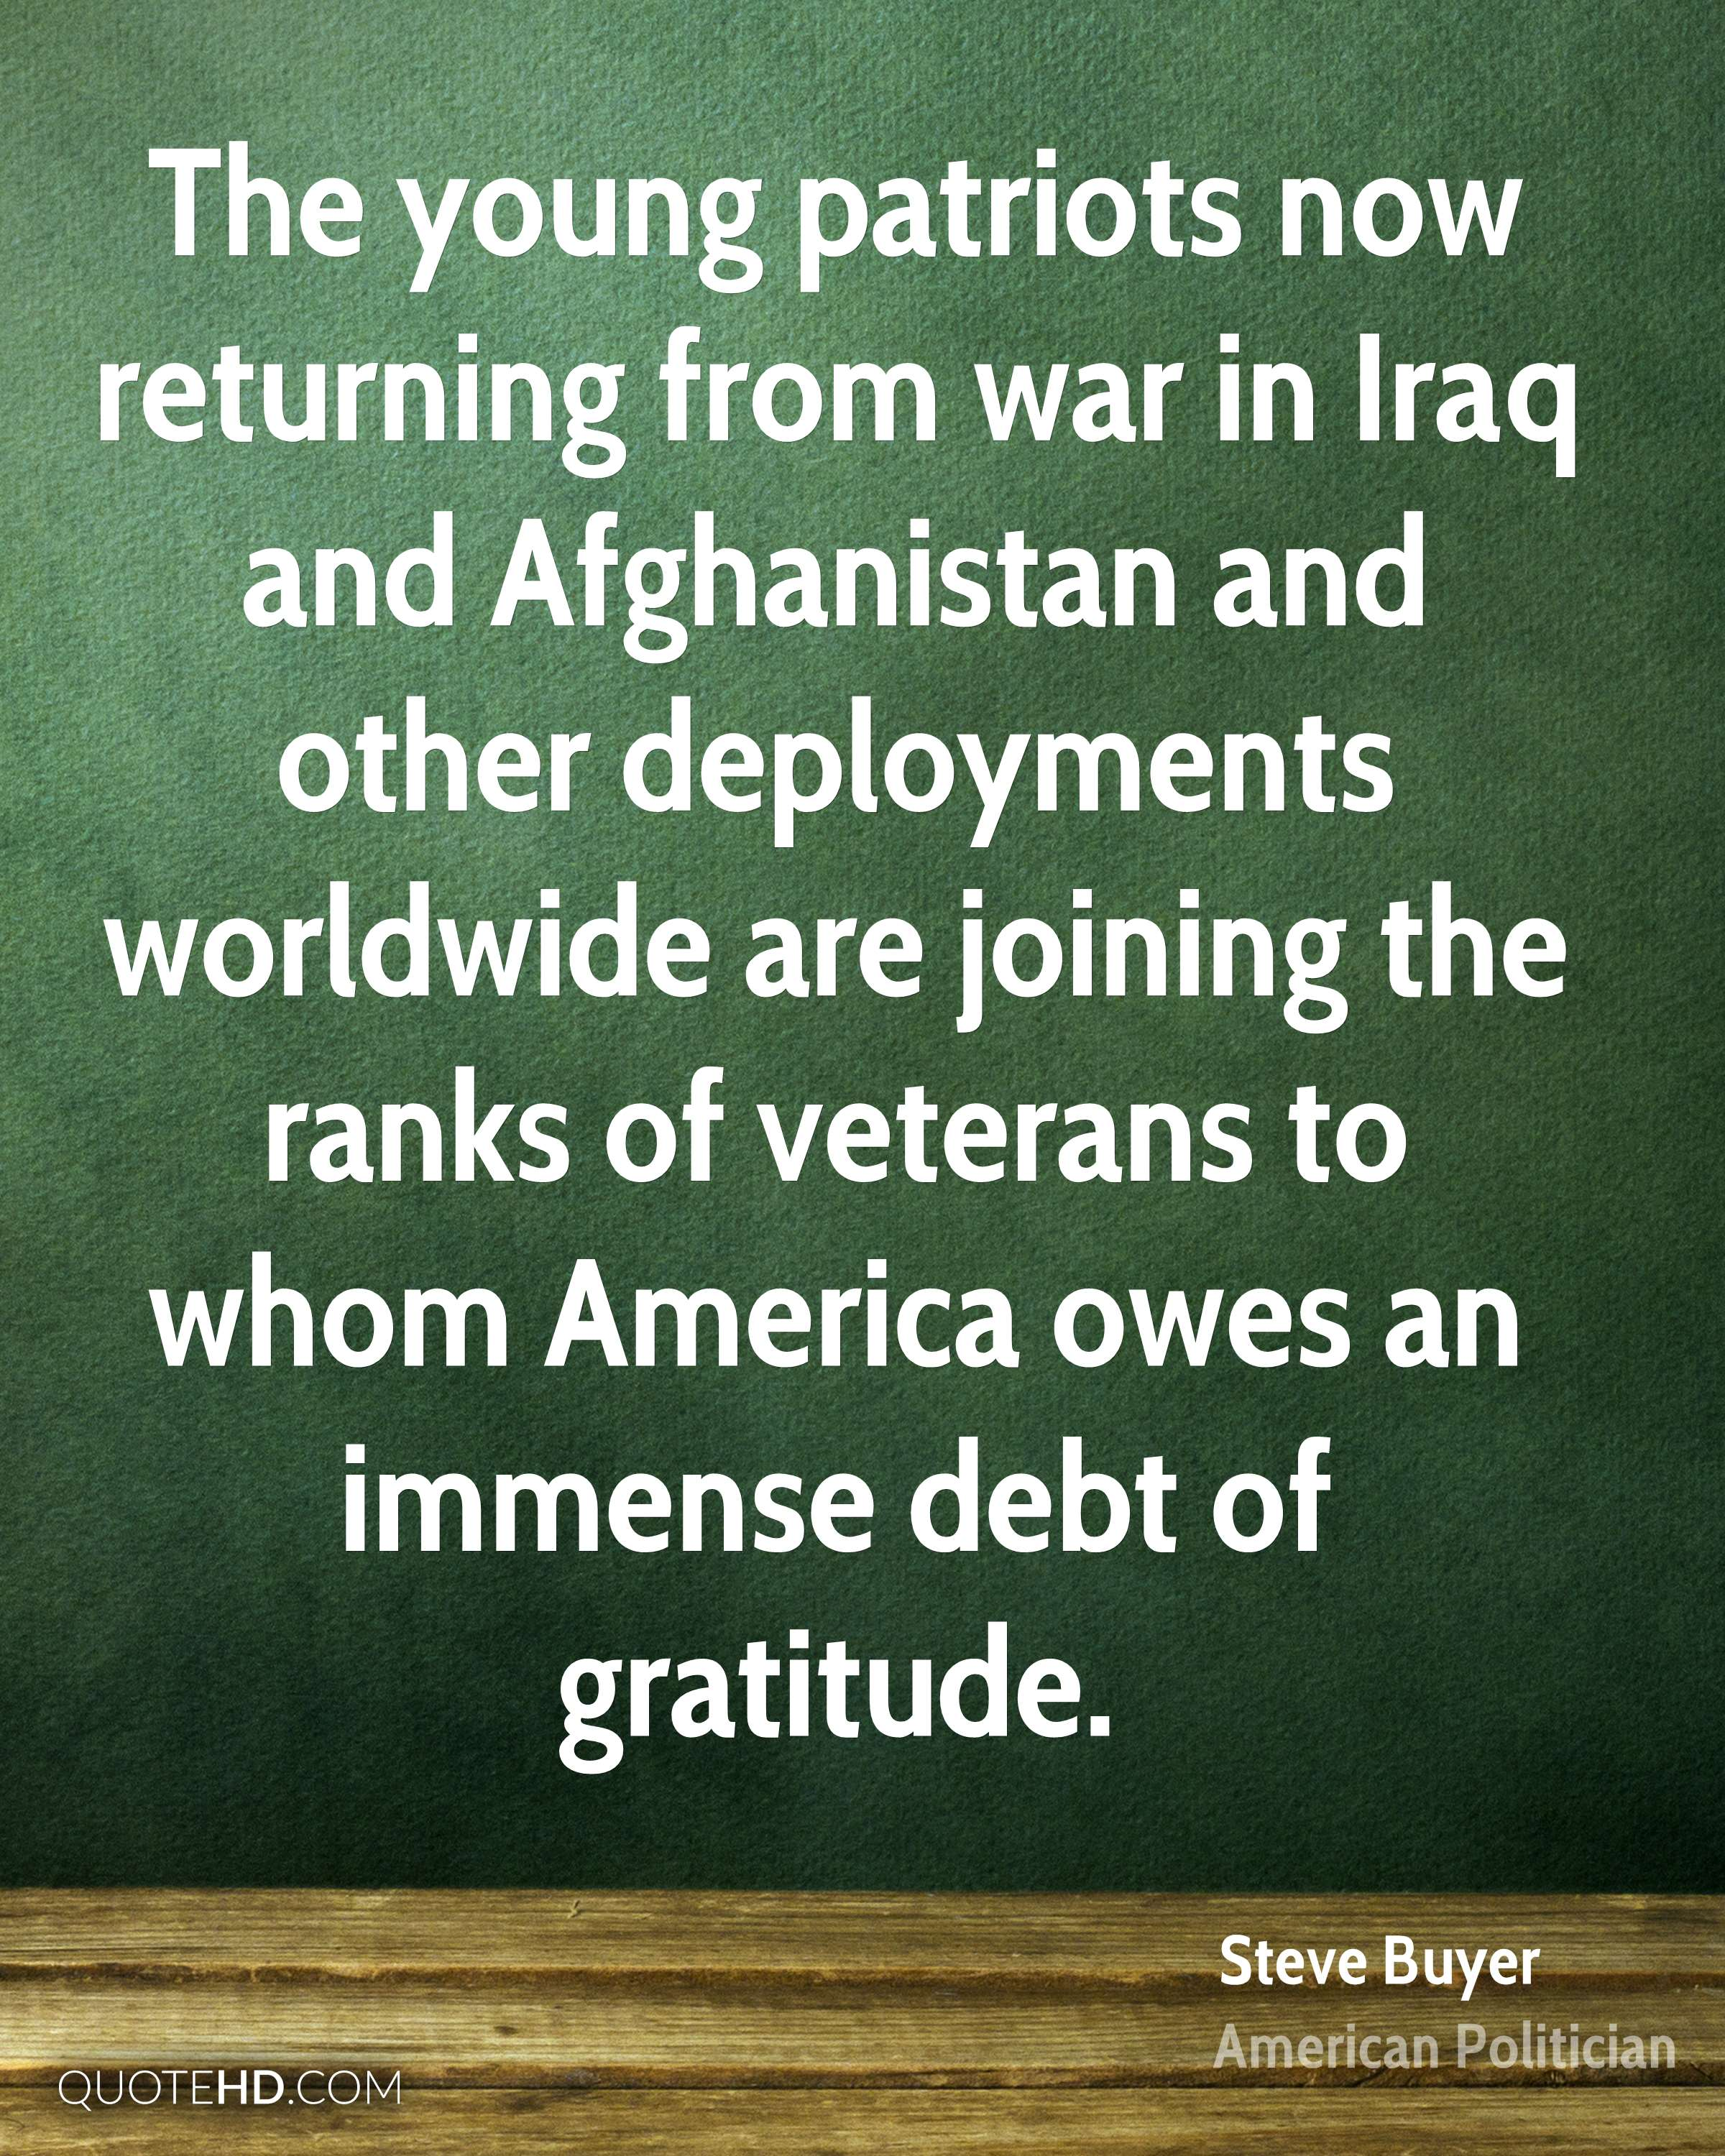 The young patriots now returning from war in Iraq and Afghanistan and other deployments worldwide are joining the ranks of veterans to whom America owes an immense debt of gratitude.